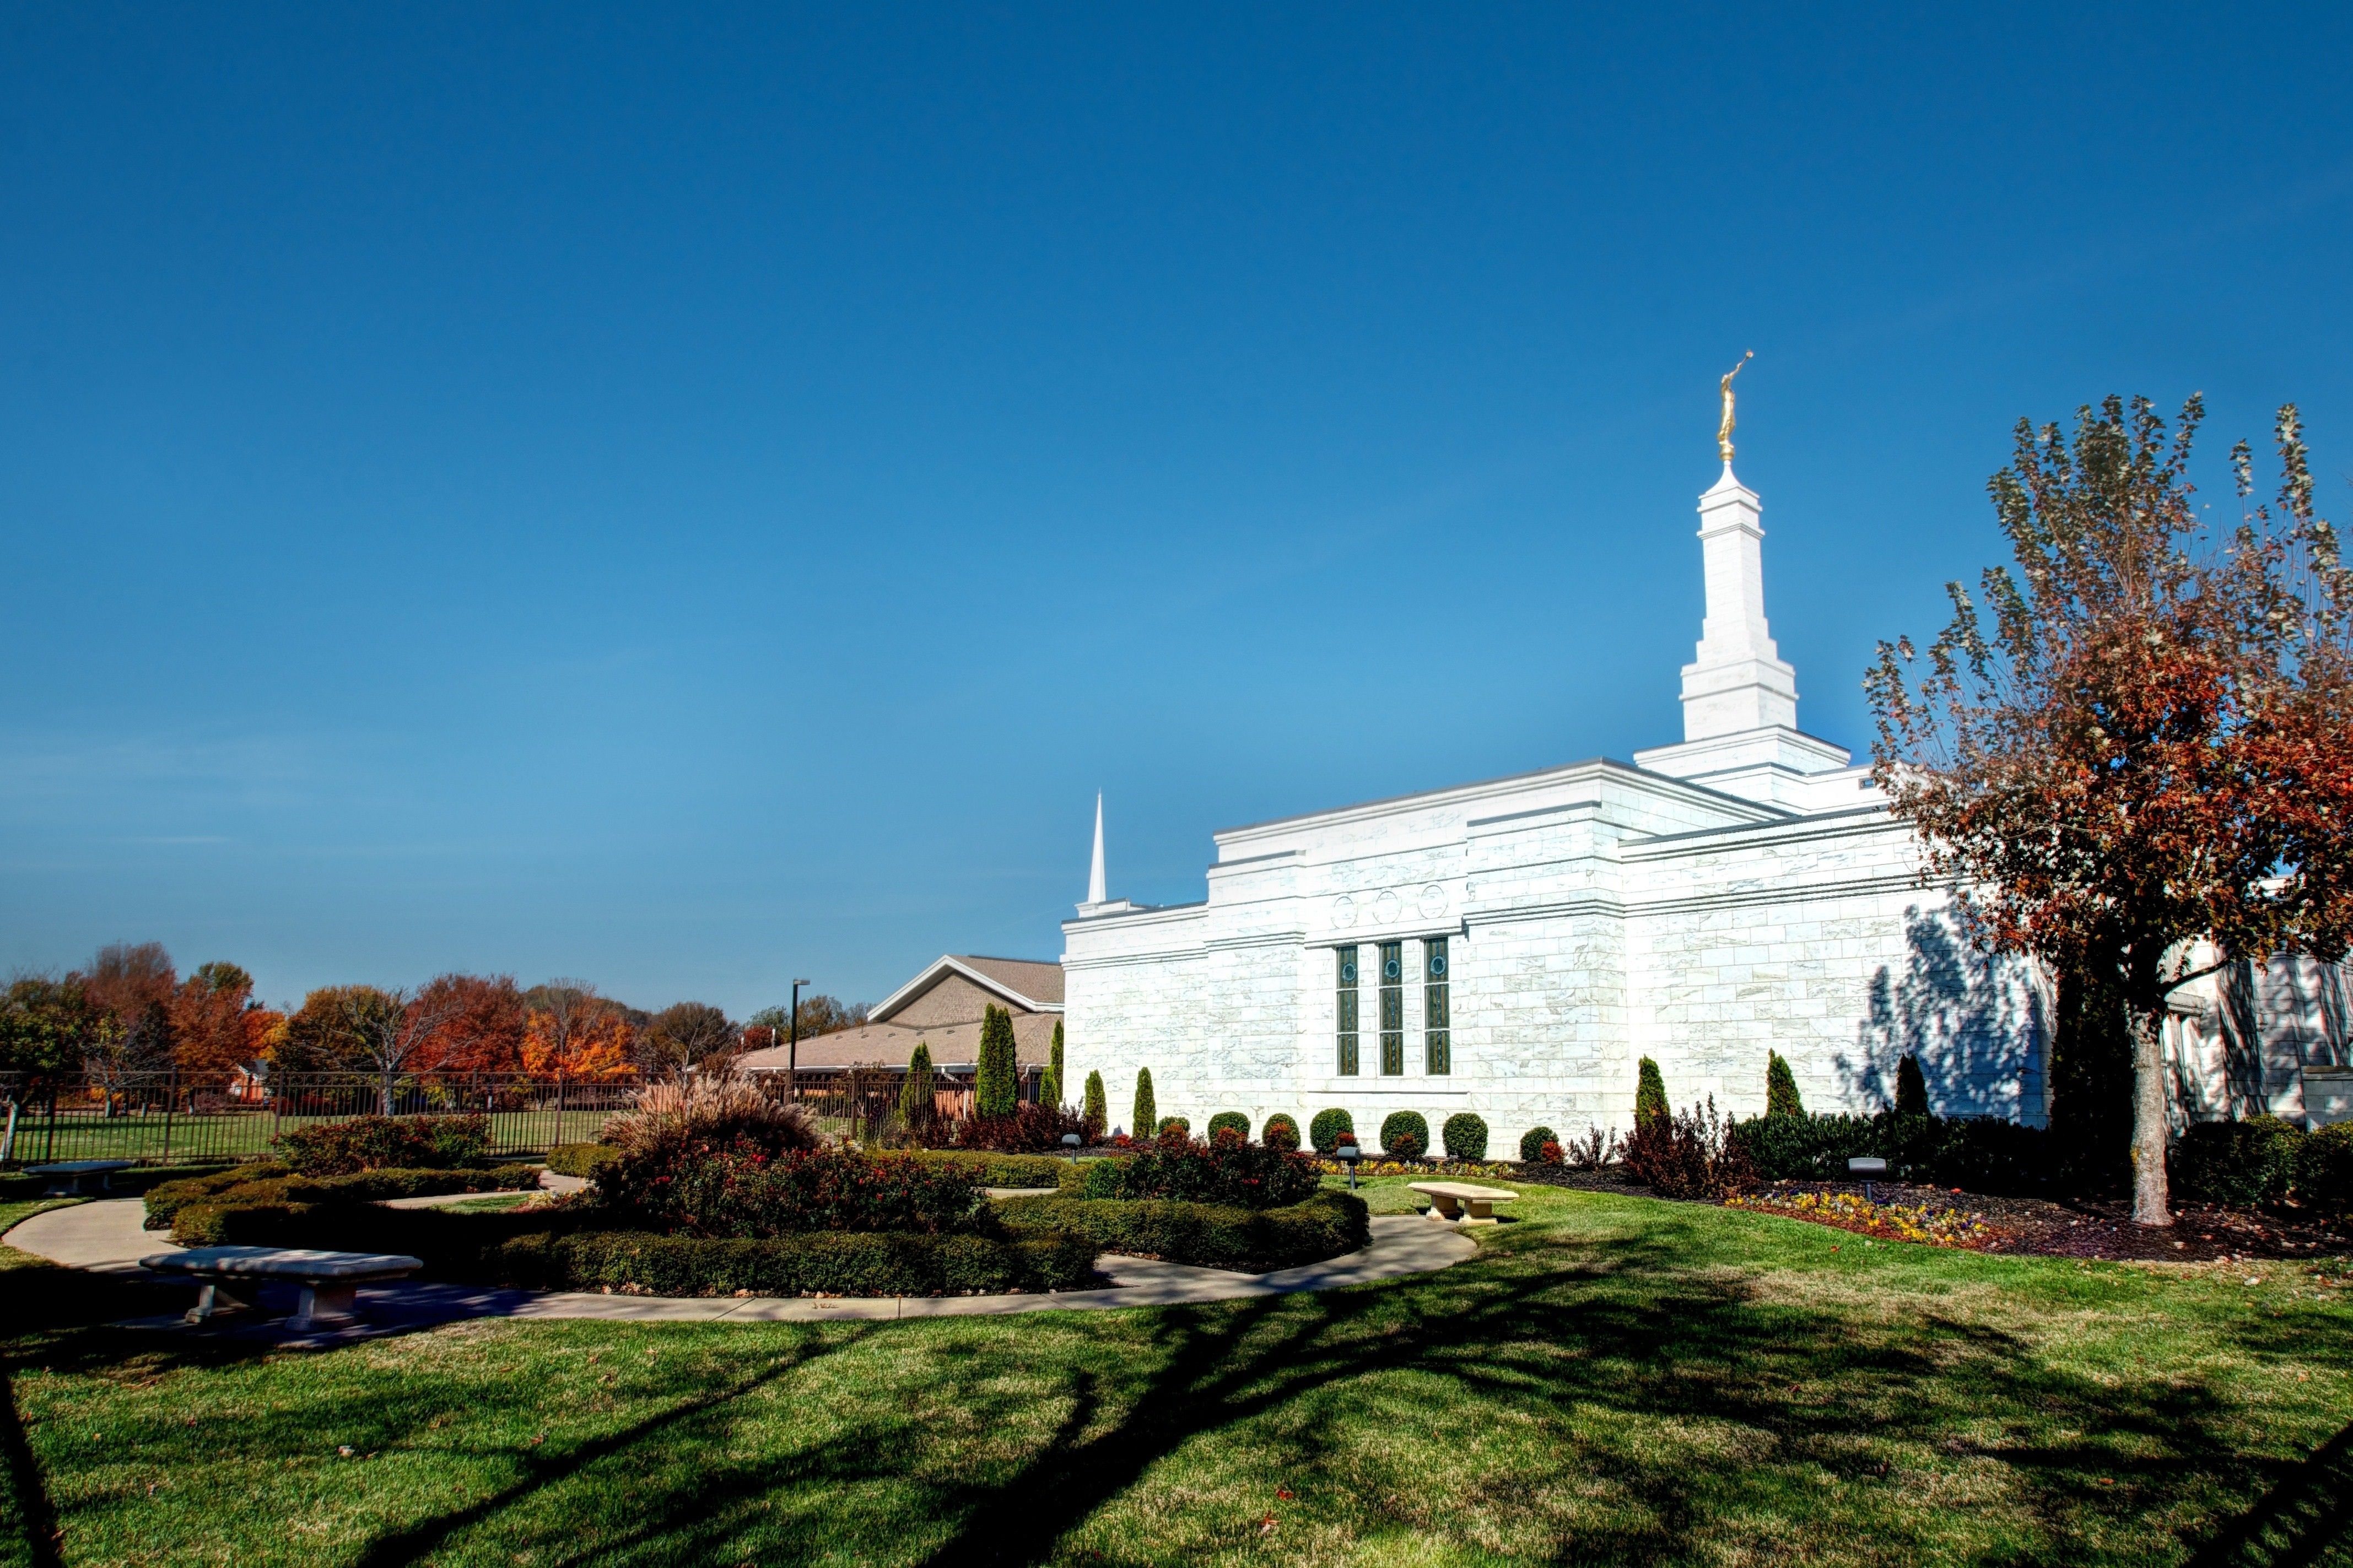 The Nashville Tennessee Temple side view, including scenery.